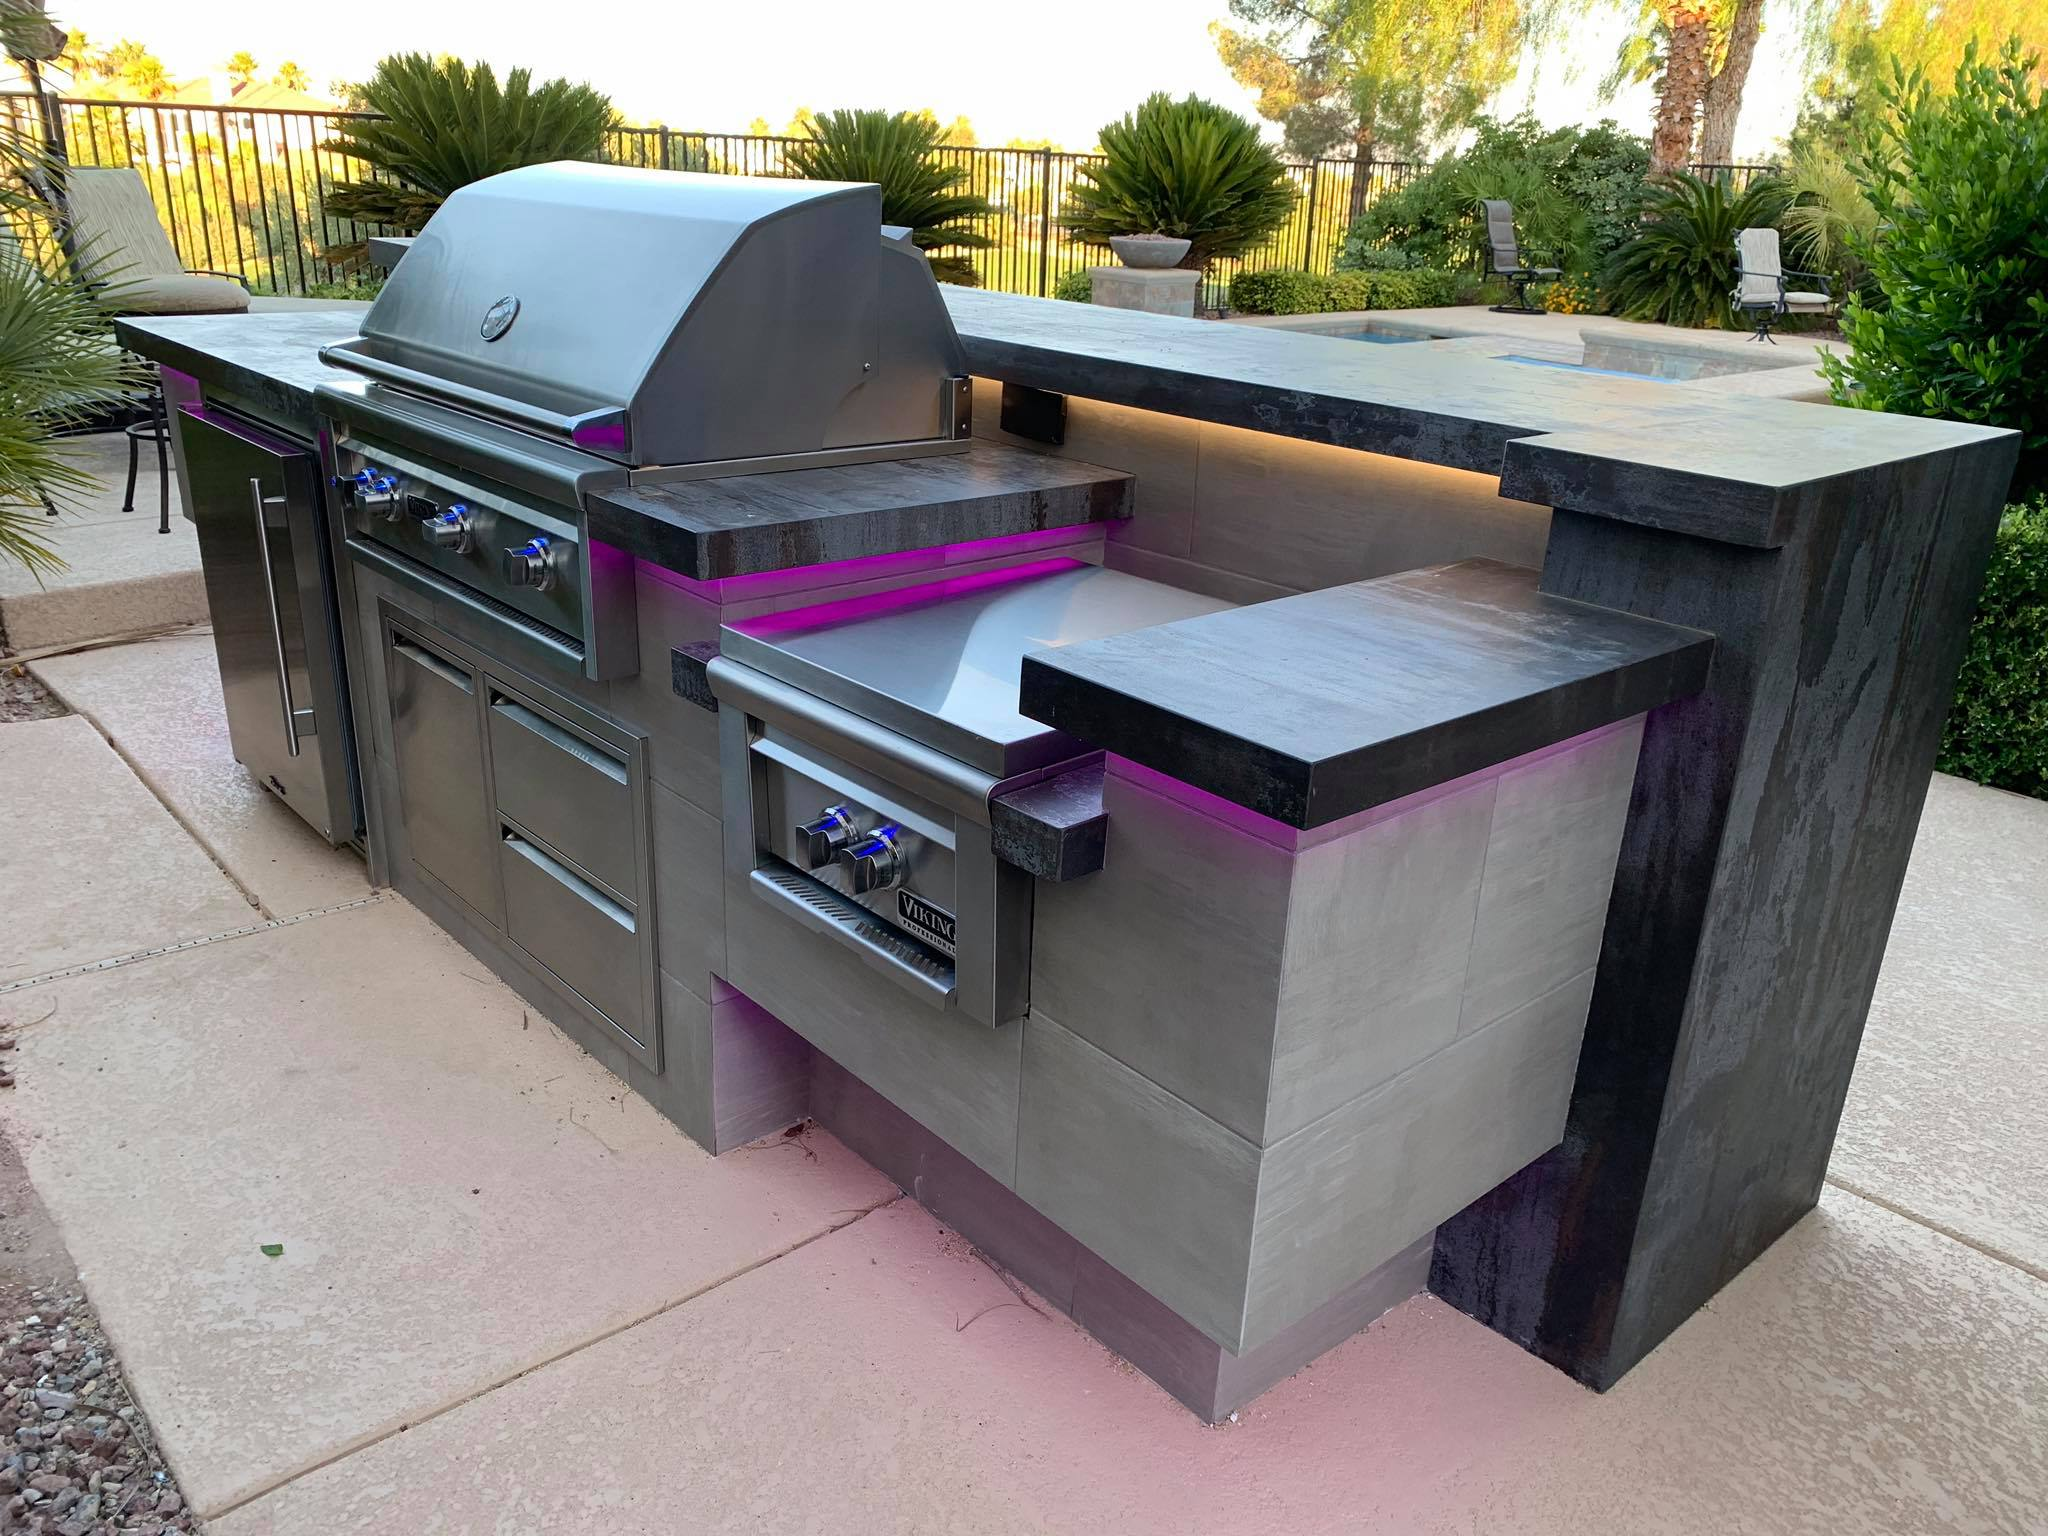 Outdoor Kitchen Viking Outdoor Grill 4